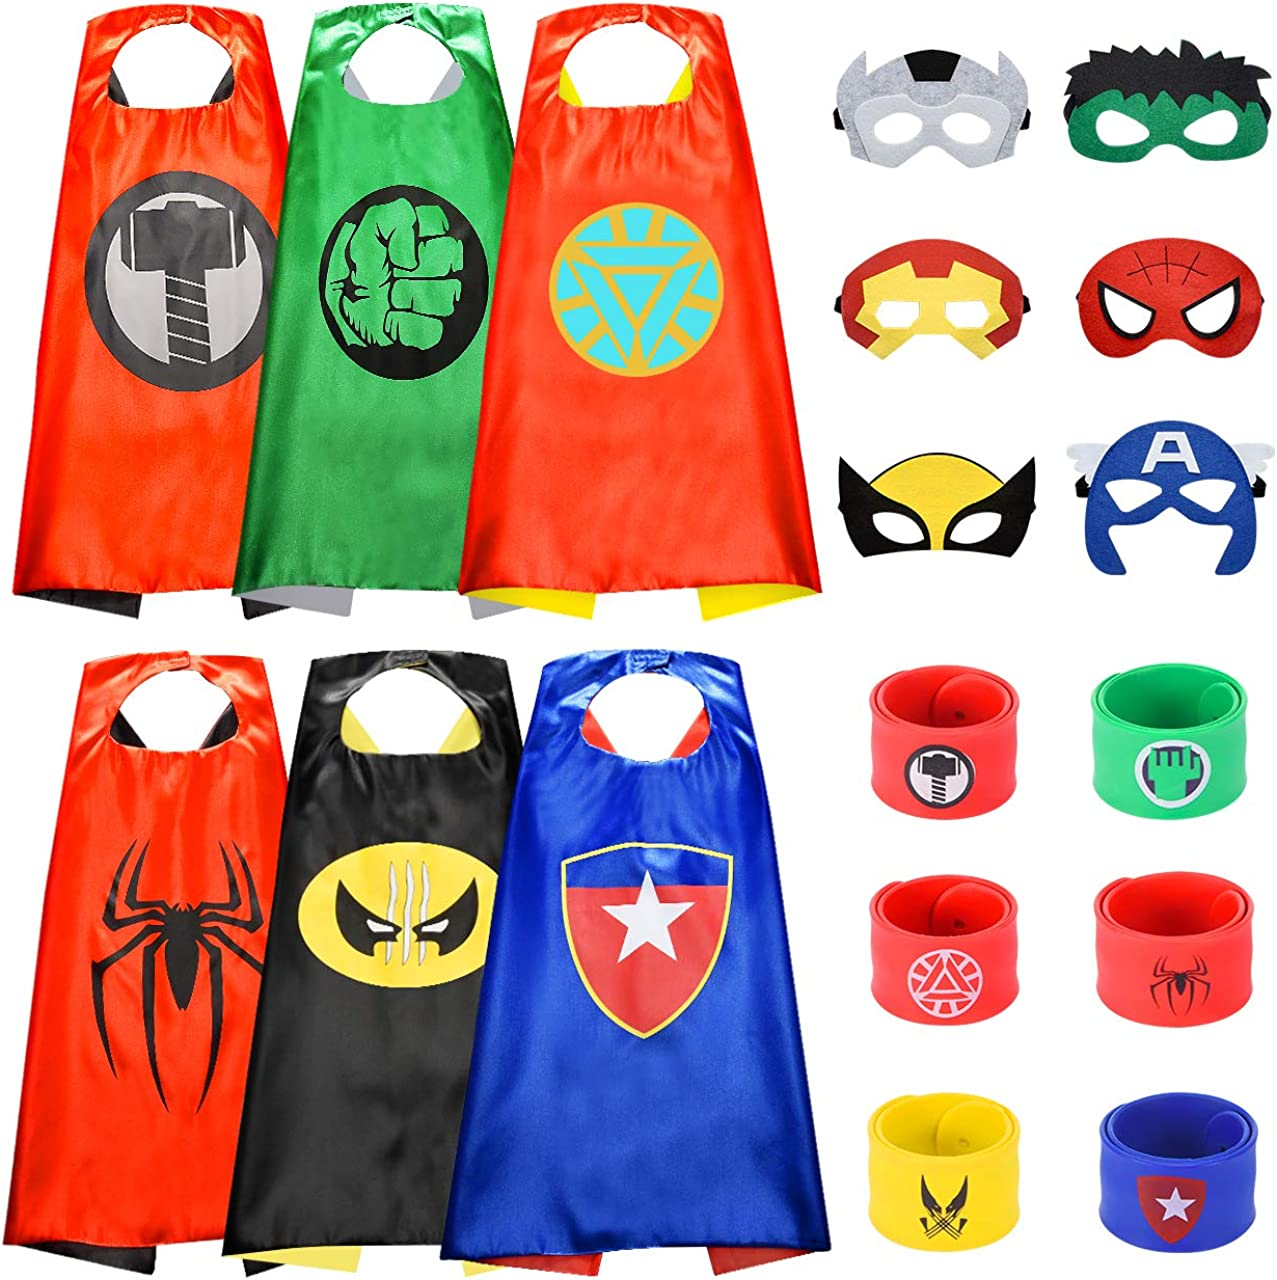 Tesoky Toys for 3-10 Year Old Boys, Superhero Capes for Kids Superhero Costume Include Capes, Masks and Wristbands